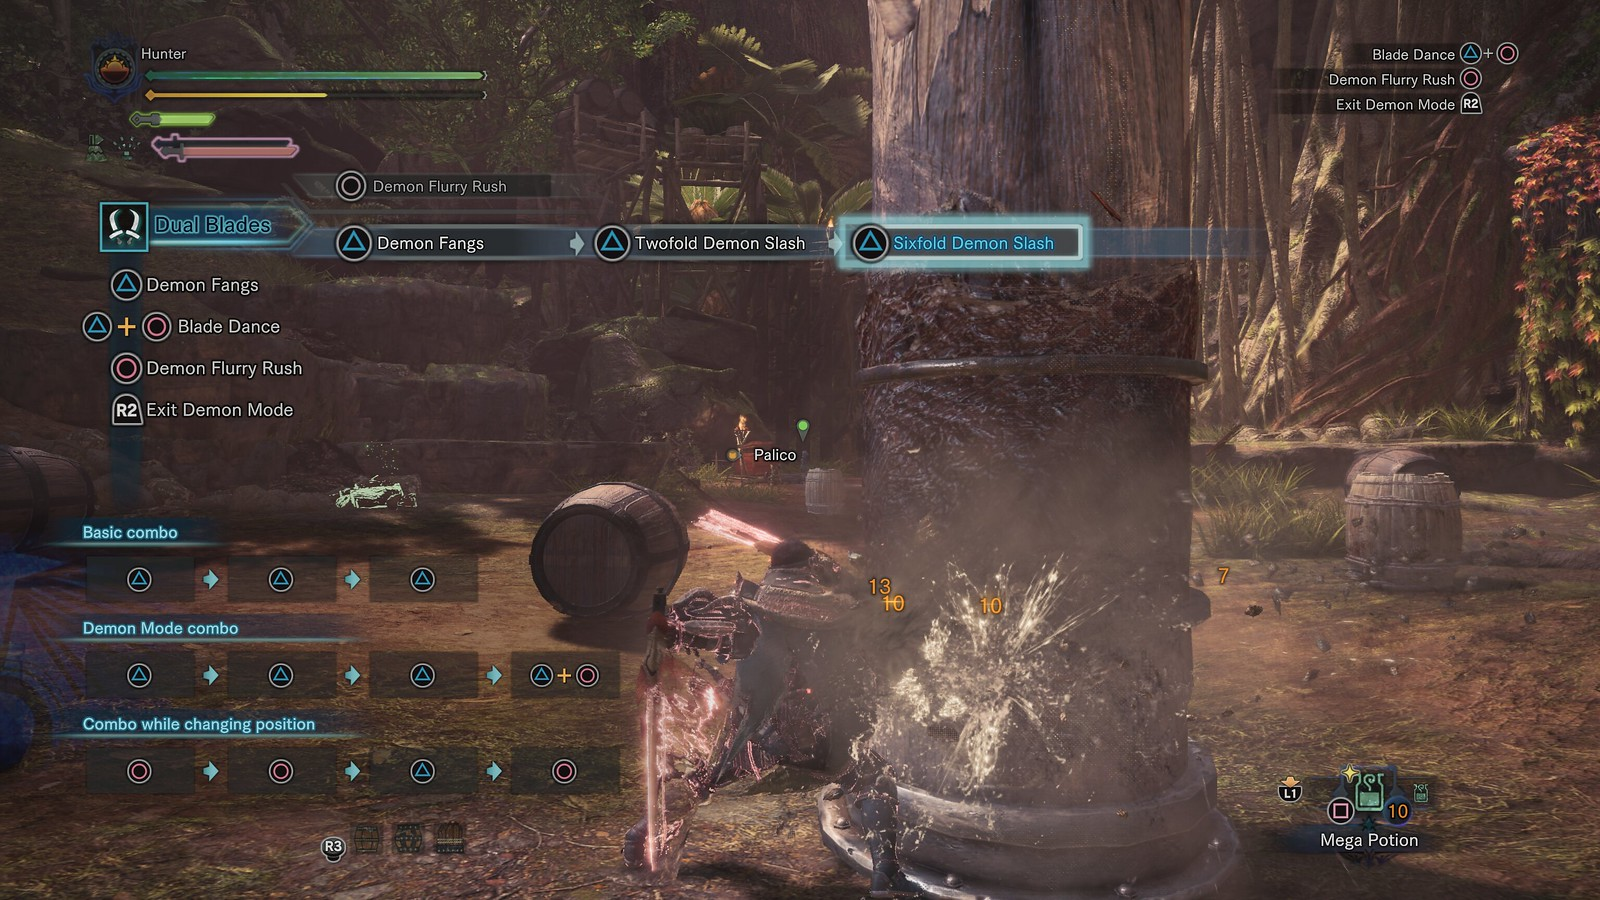 Già disponibile il pre-dowlnoad della beta di Monster Hunter World